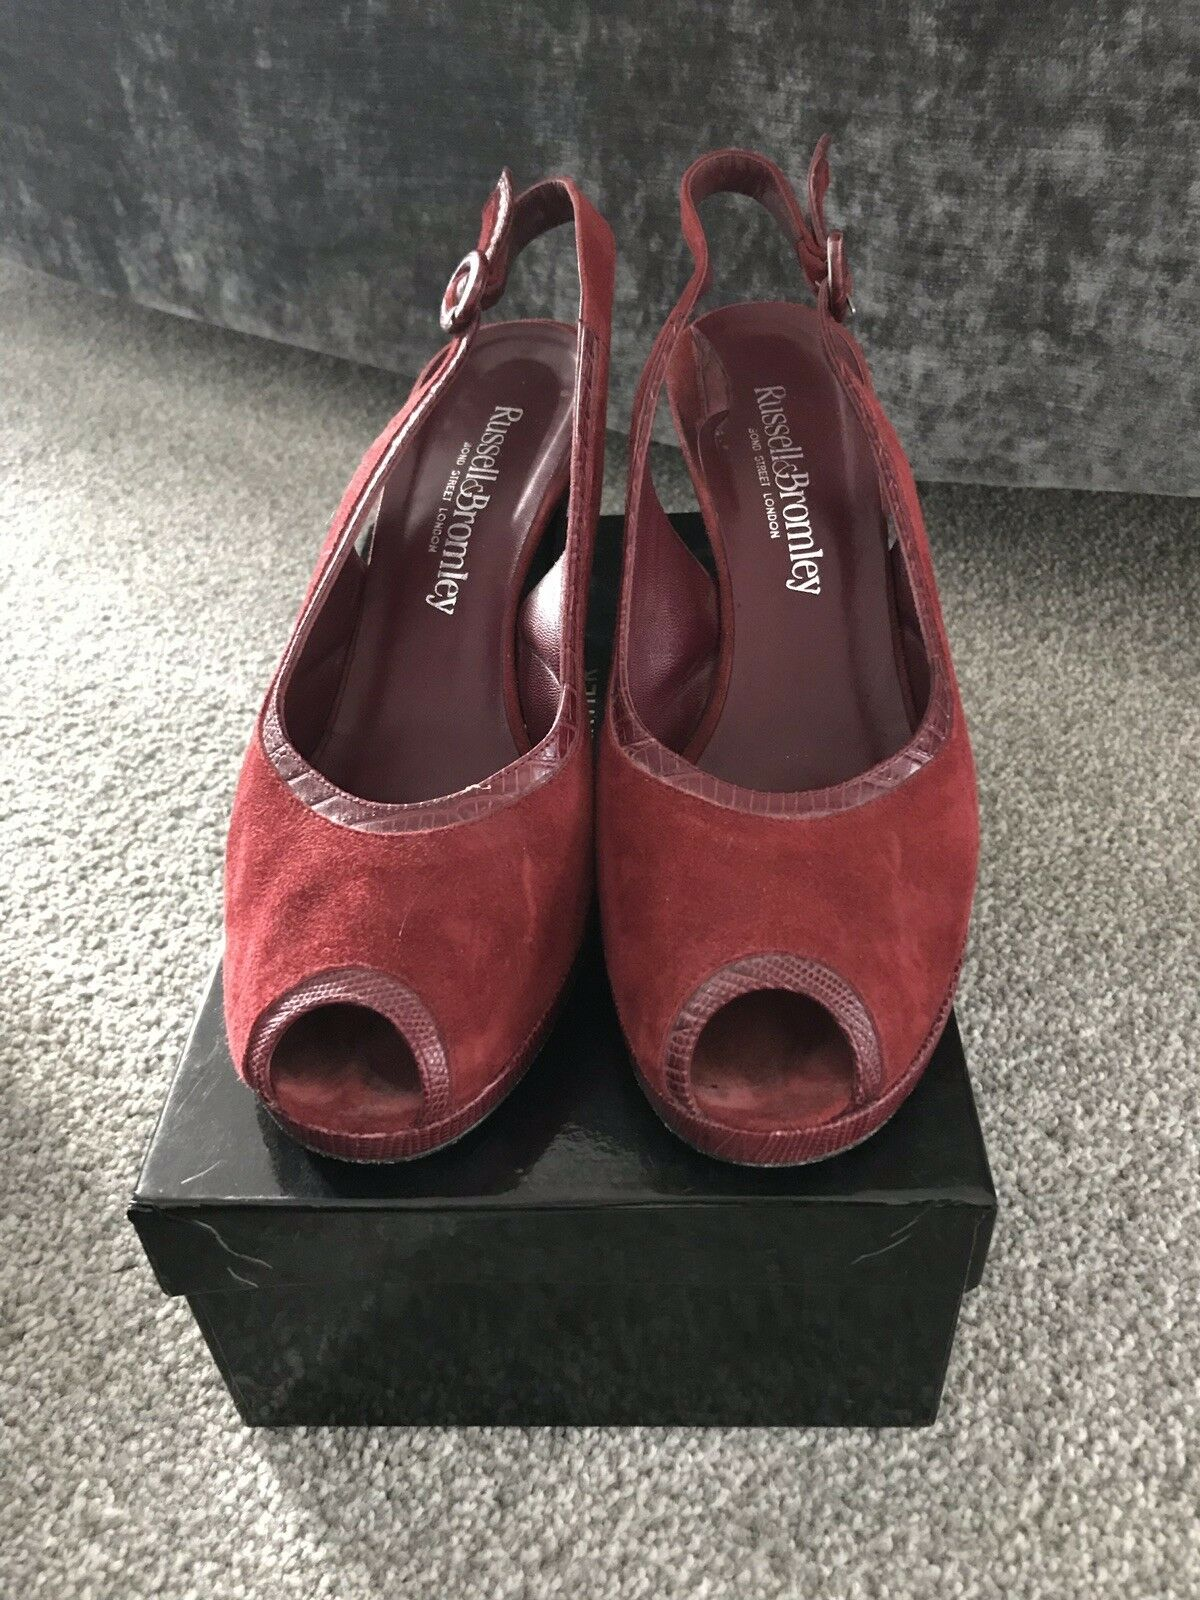 Russell And bromley size 7 Sling Back